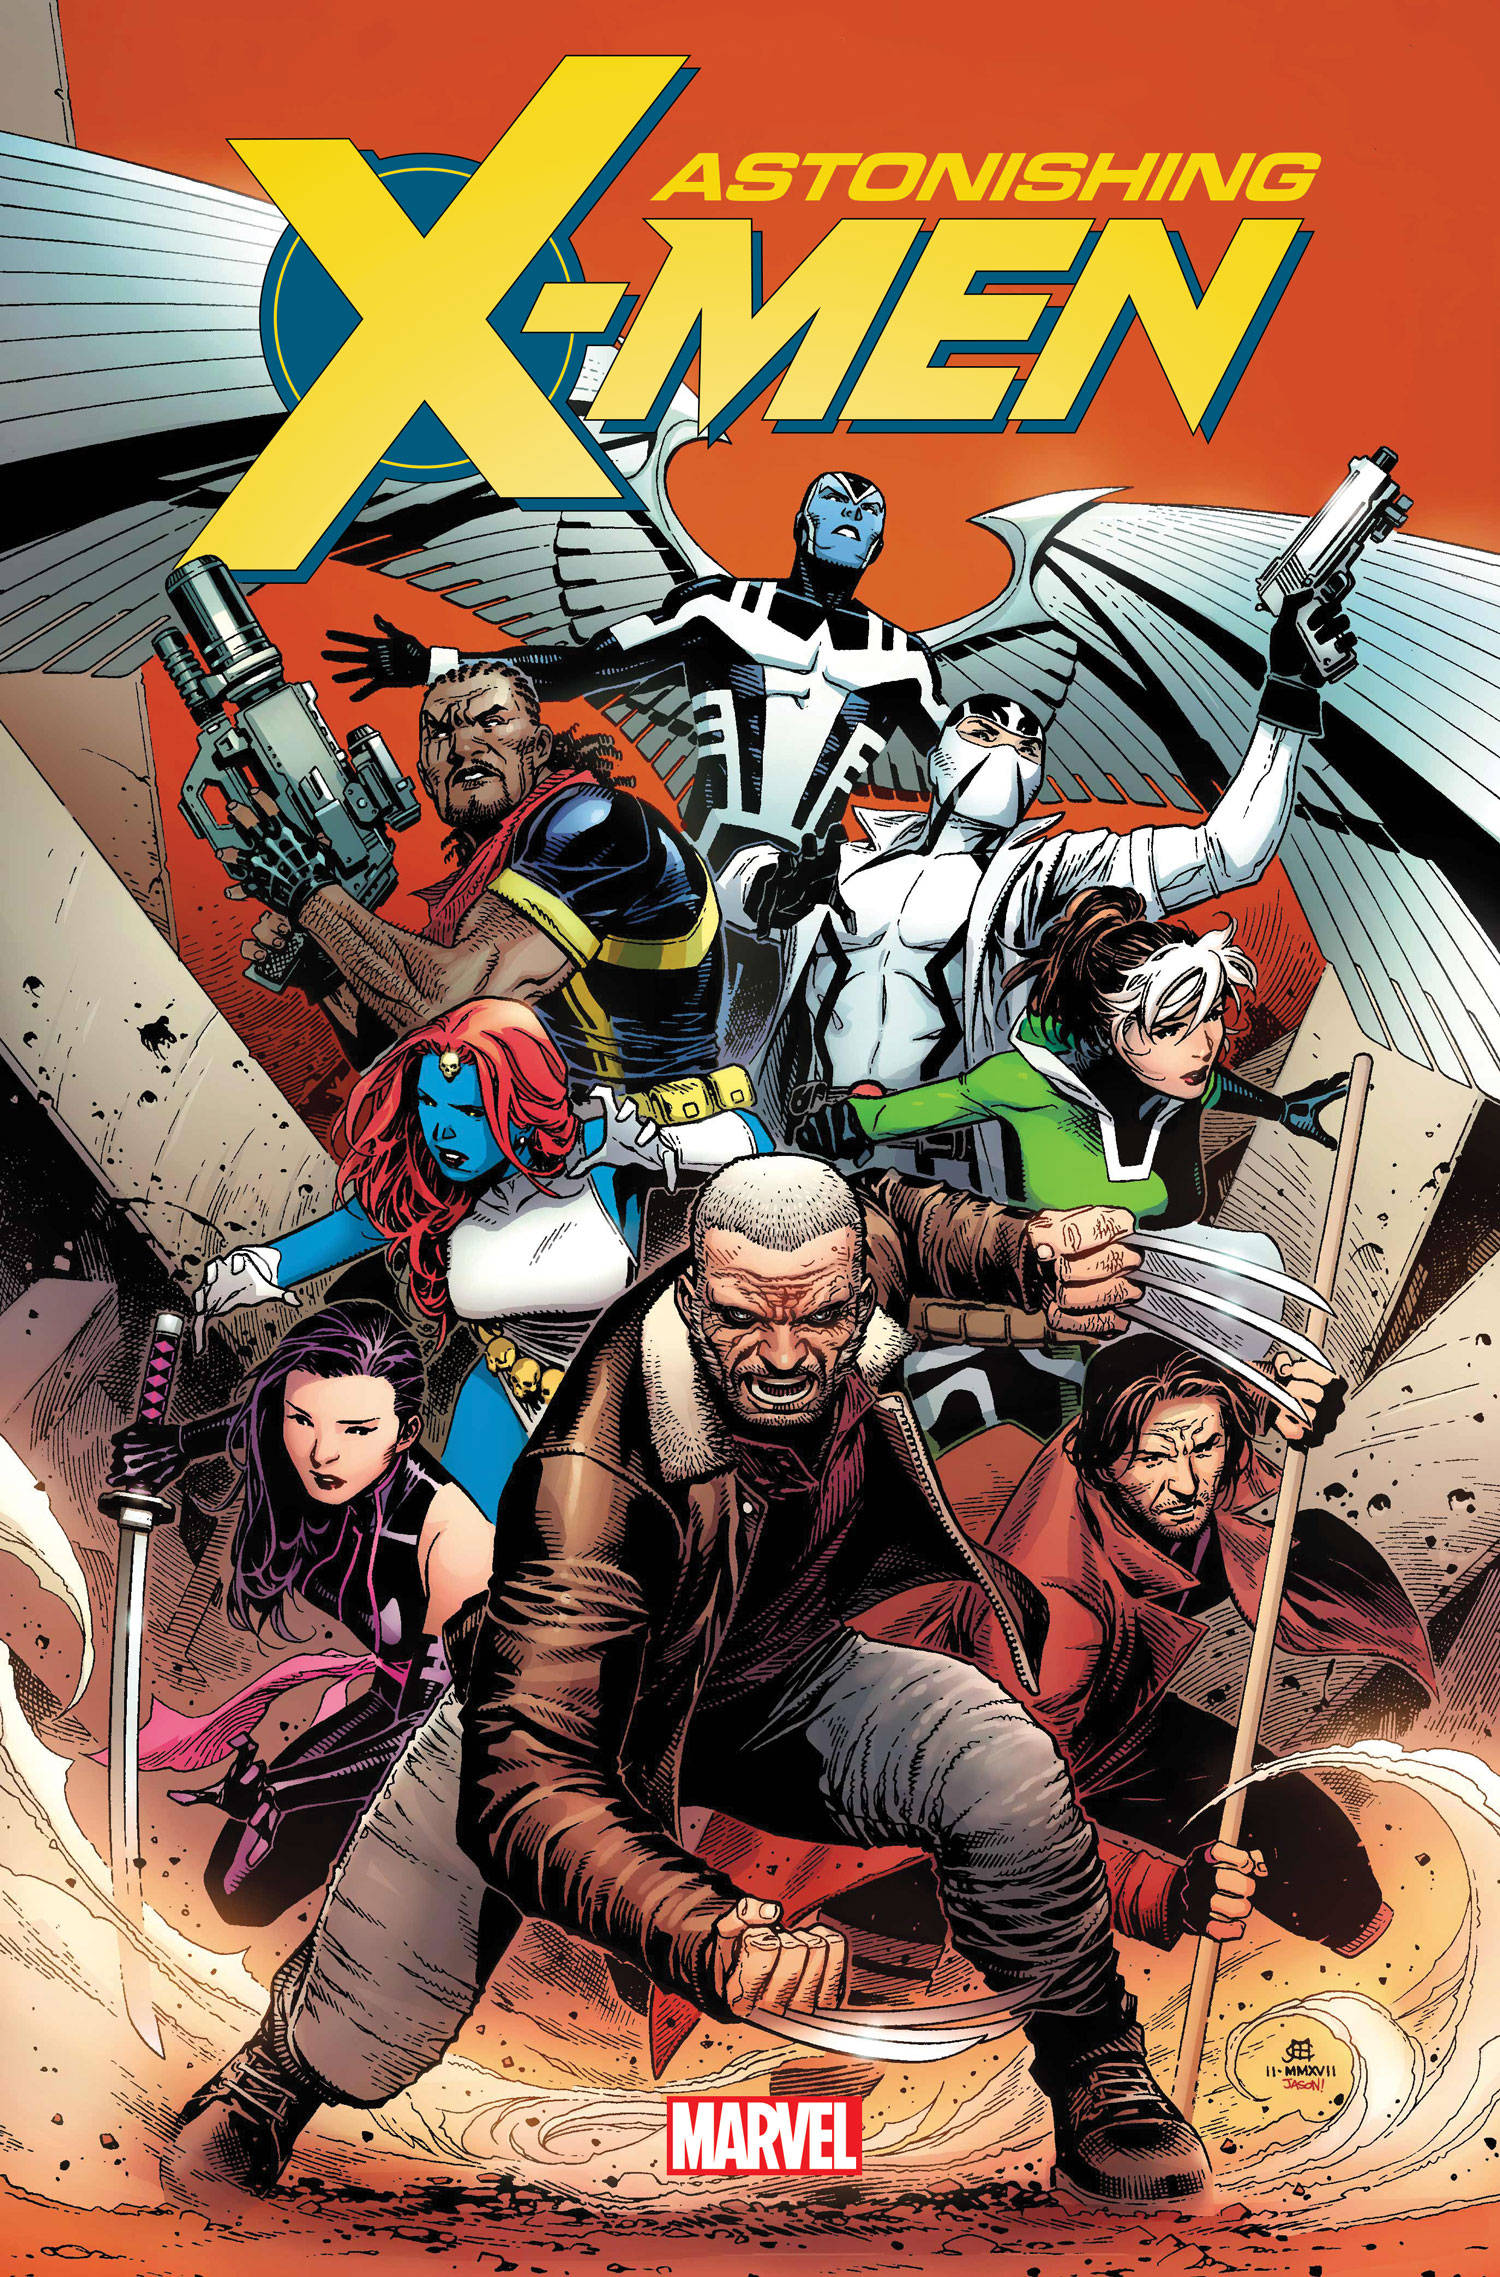 Astonishing_X-Men_1_Cover